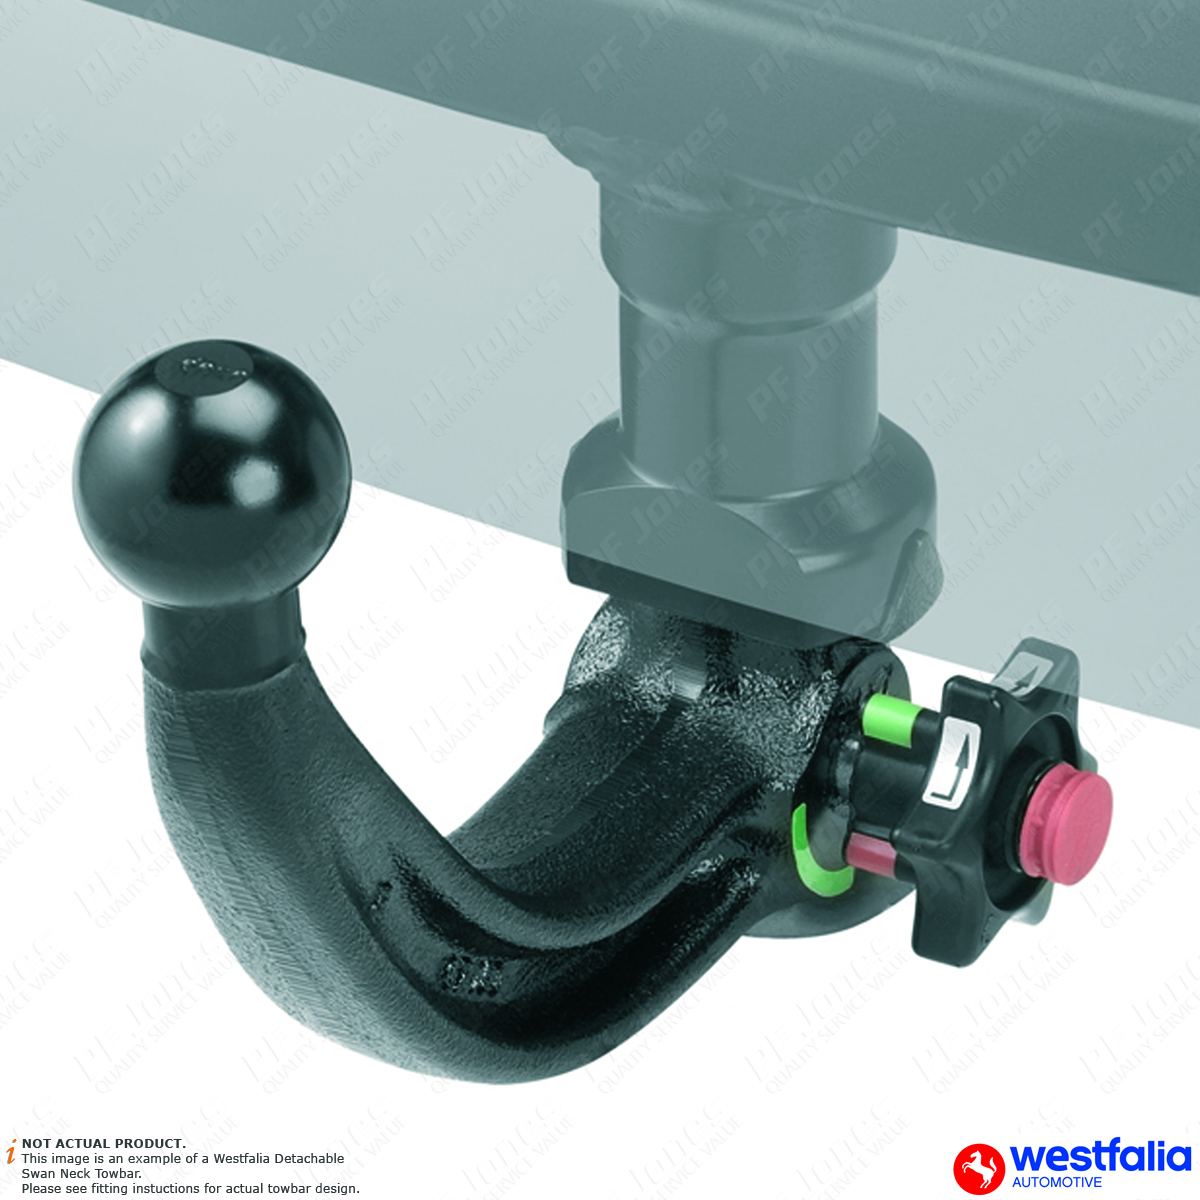 Audi A4 Westfalia Vertical Detachable towbar